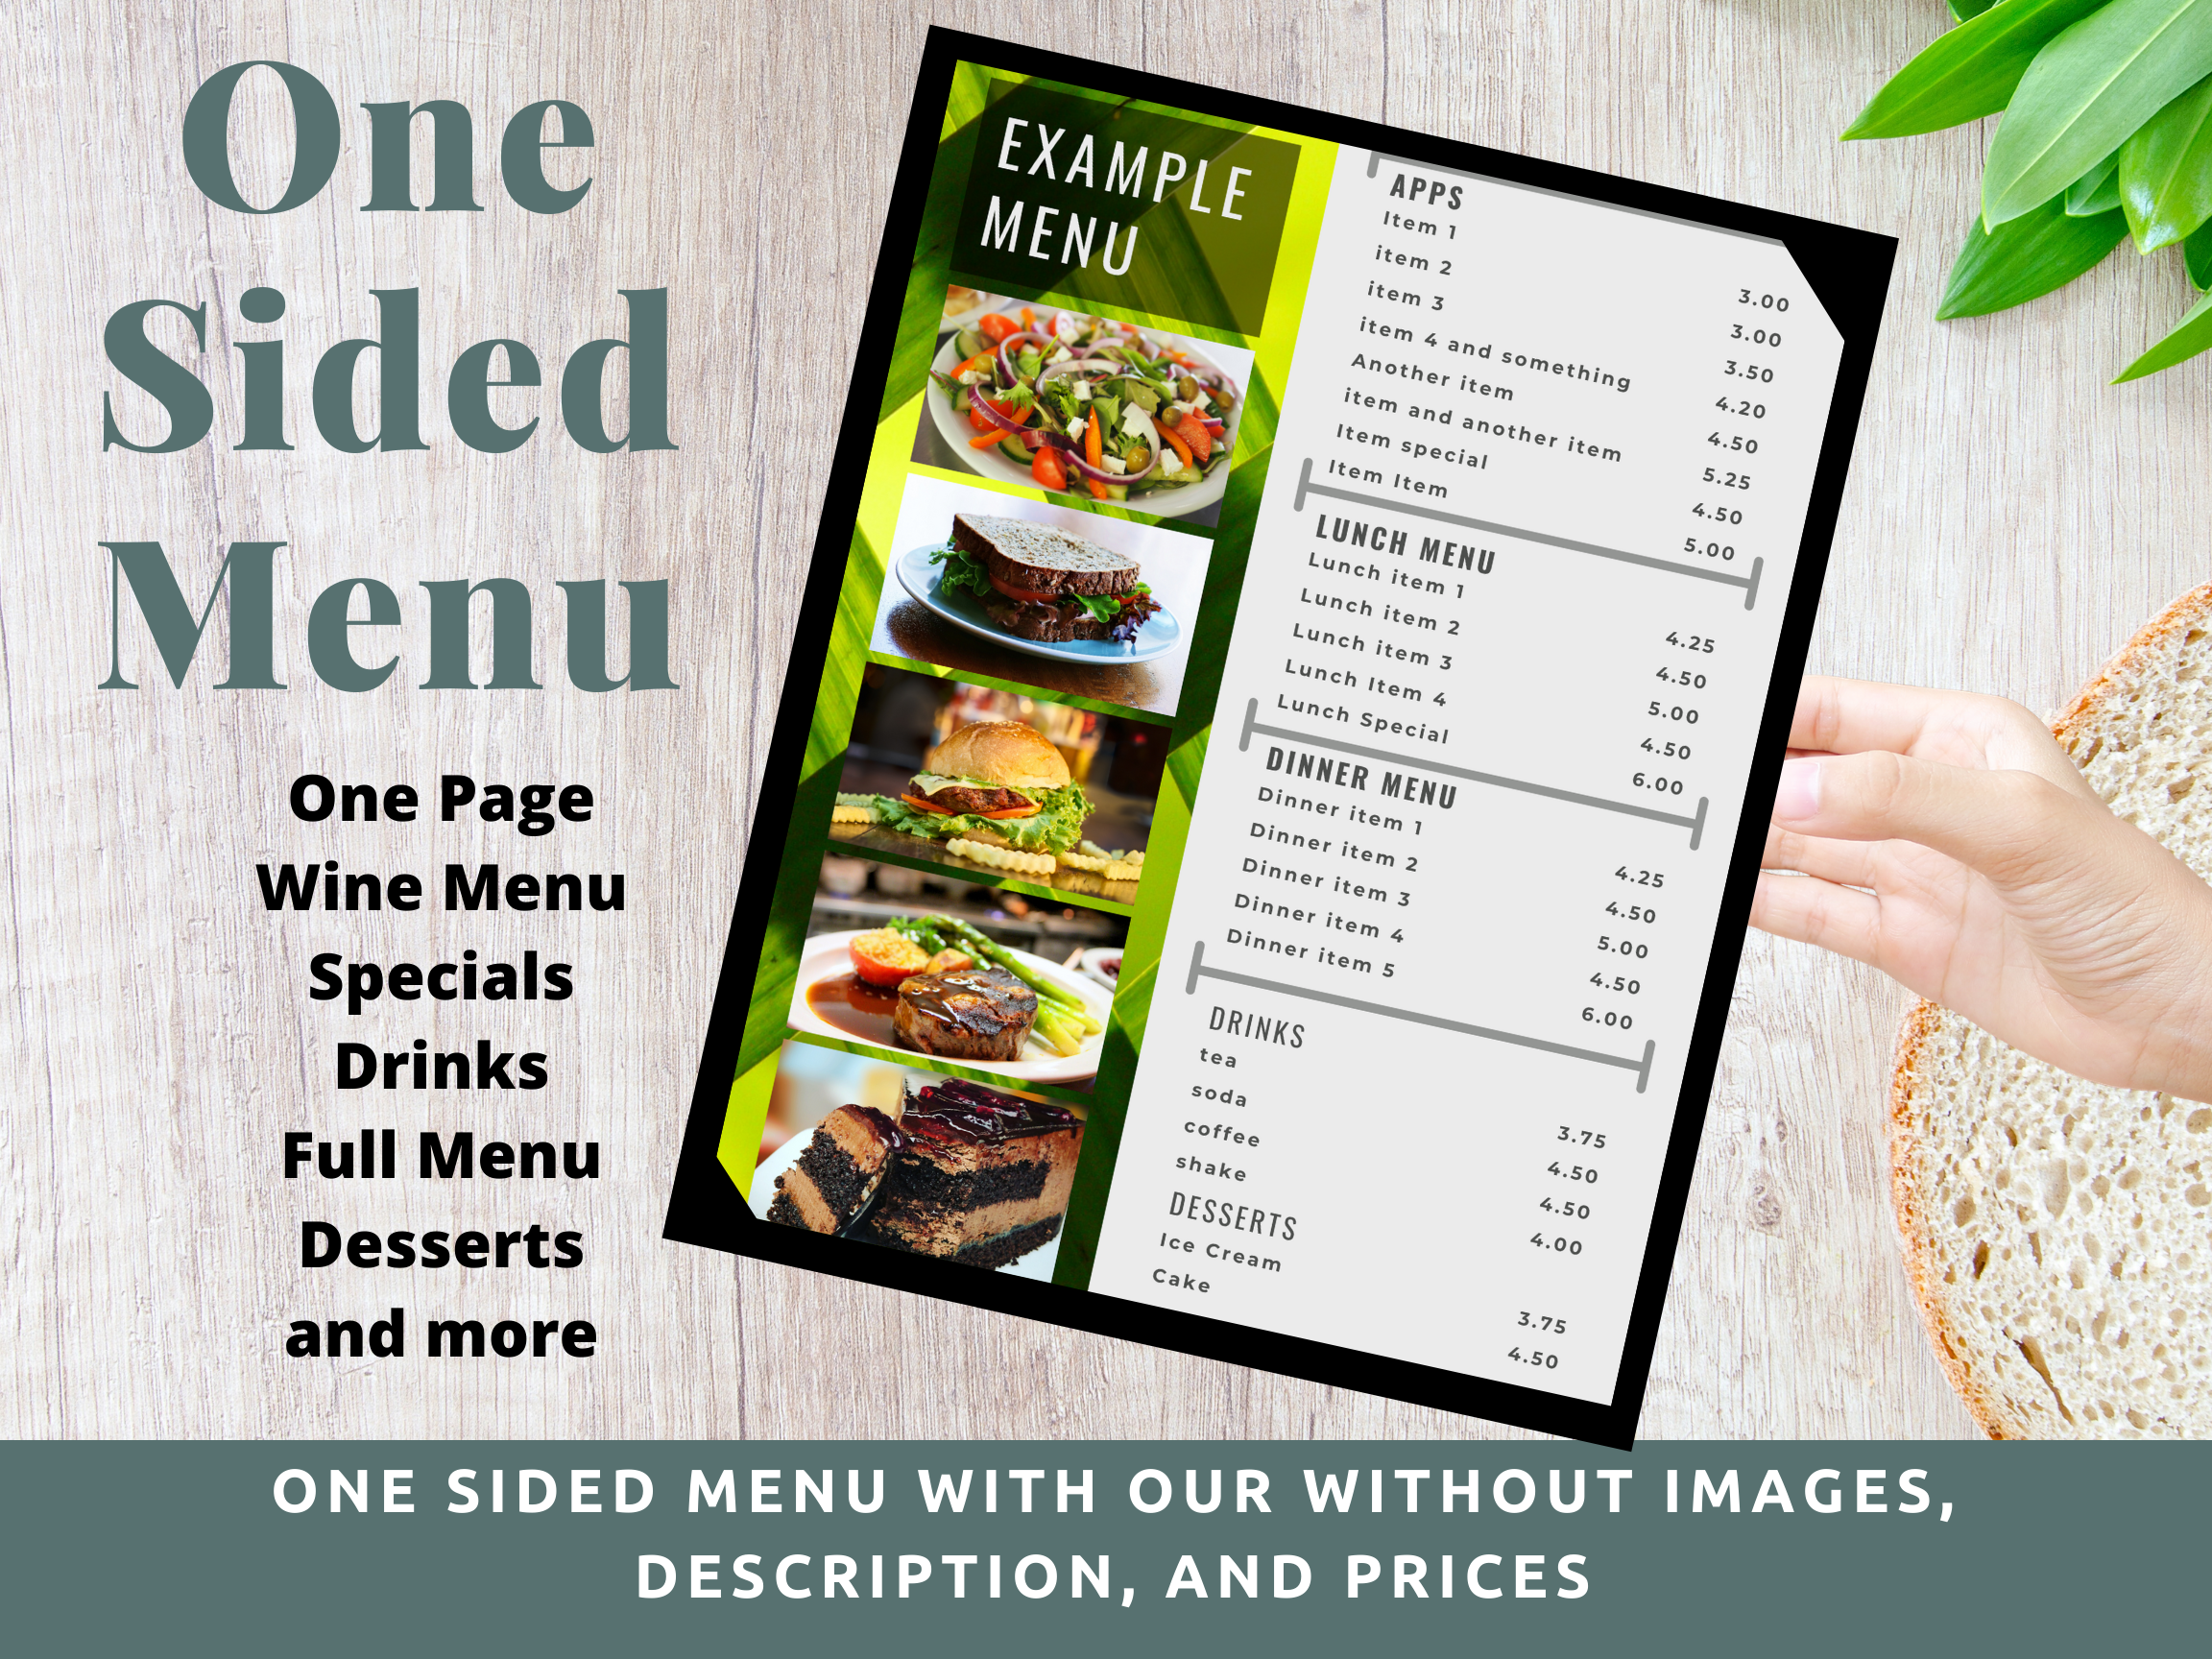 $45 Menu One Side with our without graphics